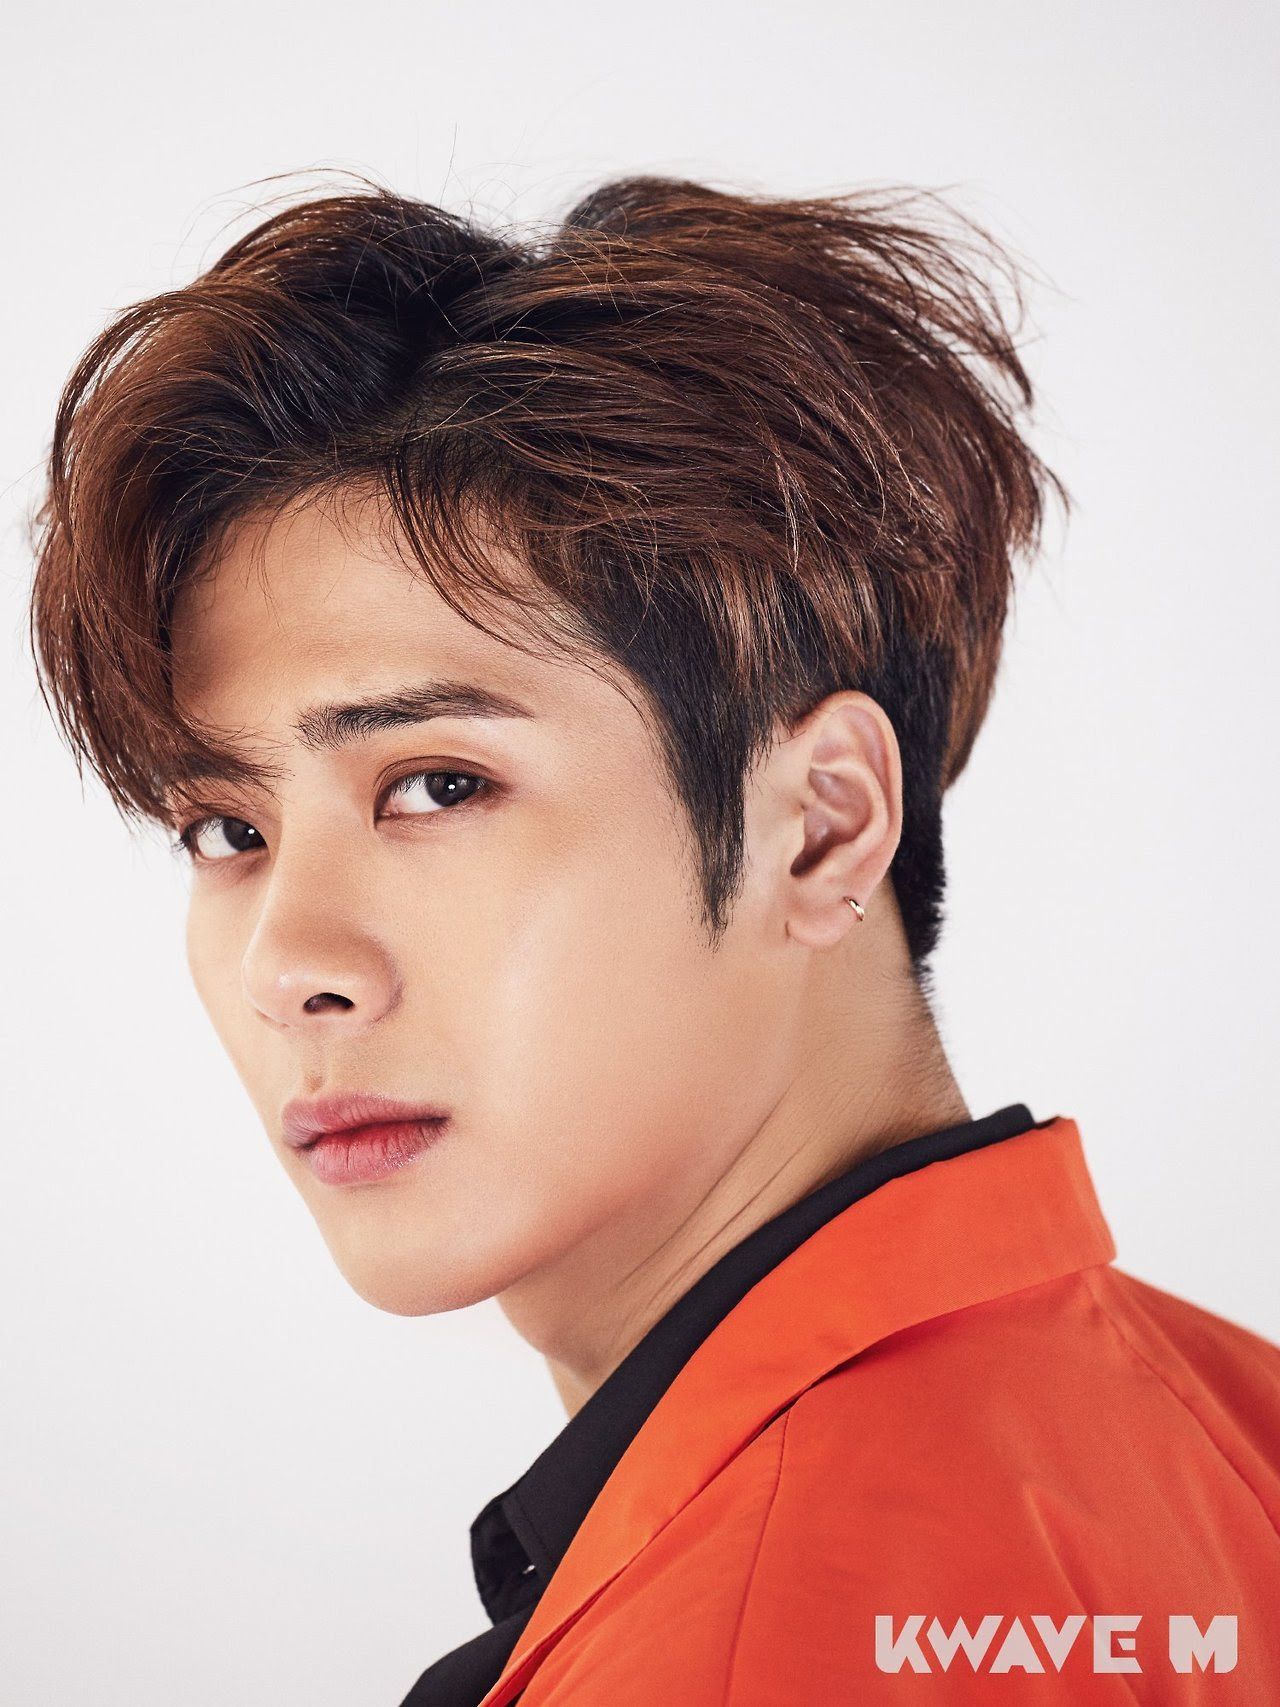 Jackson (GOT7) - Kwave Magazine March Issue '17